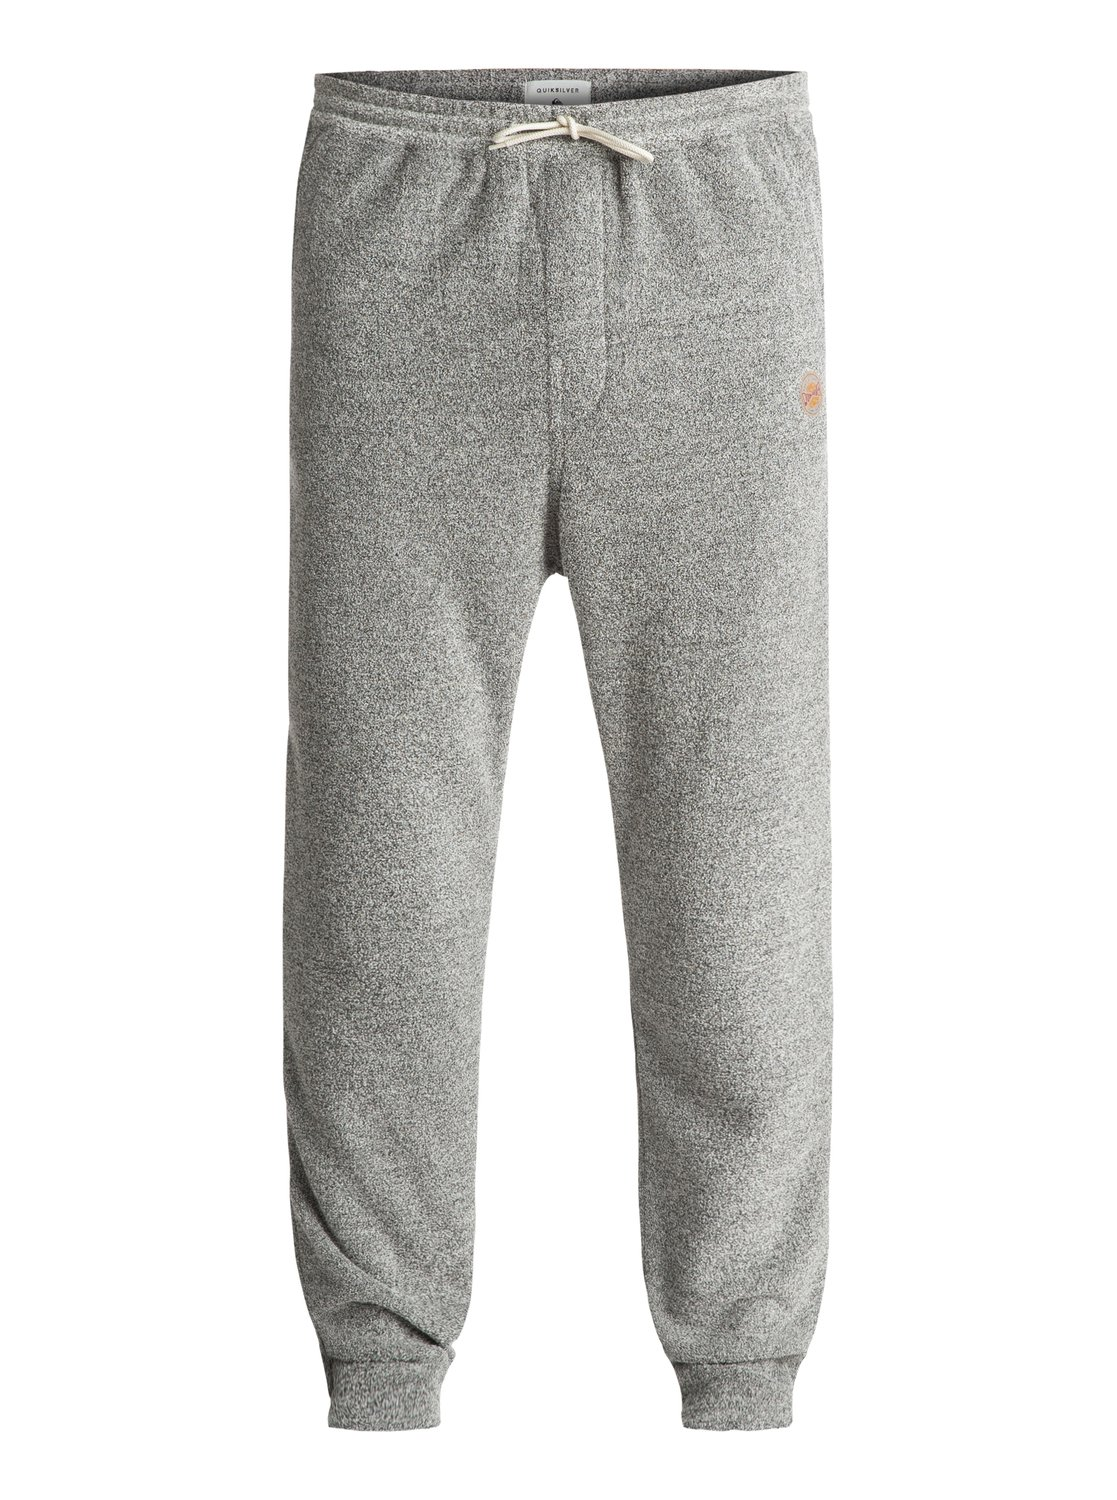 After Surf - pantalon de jogging ultra-doux pour homme - quiksilver